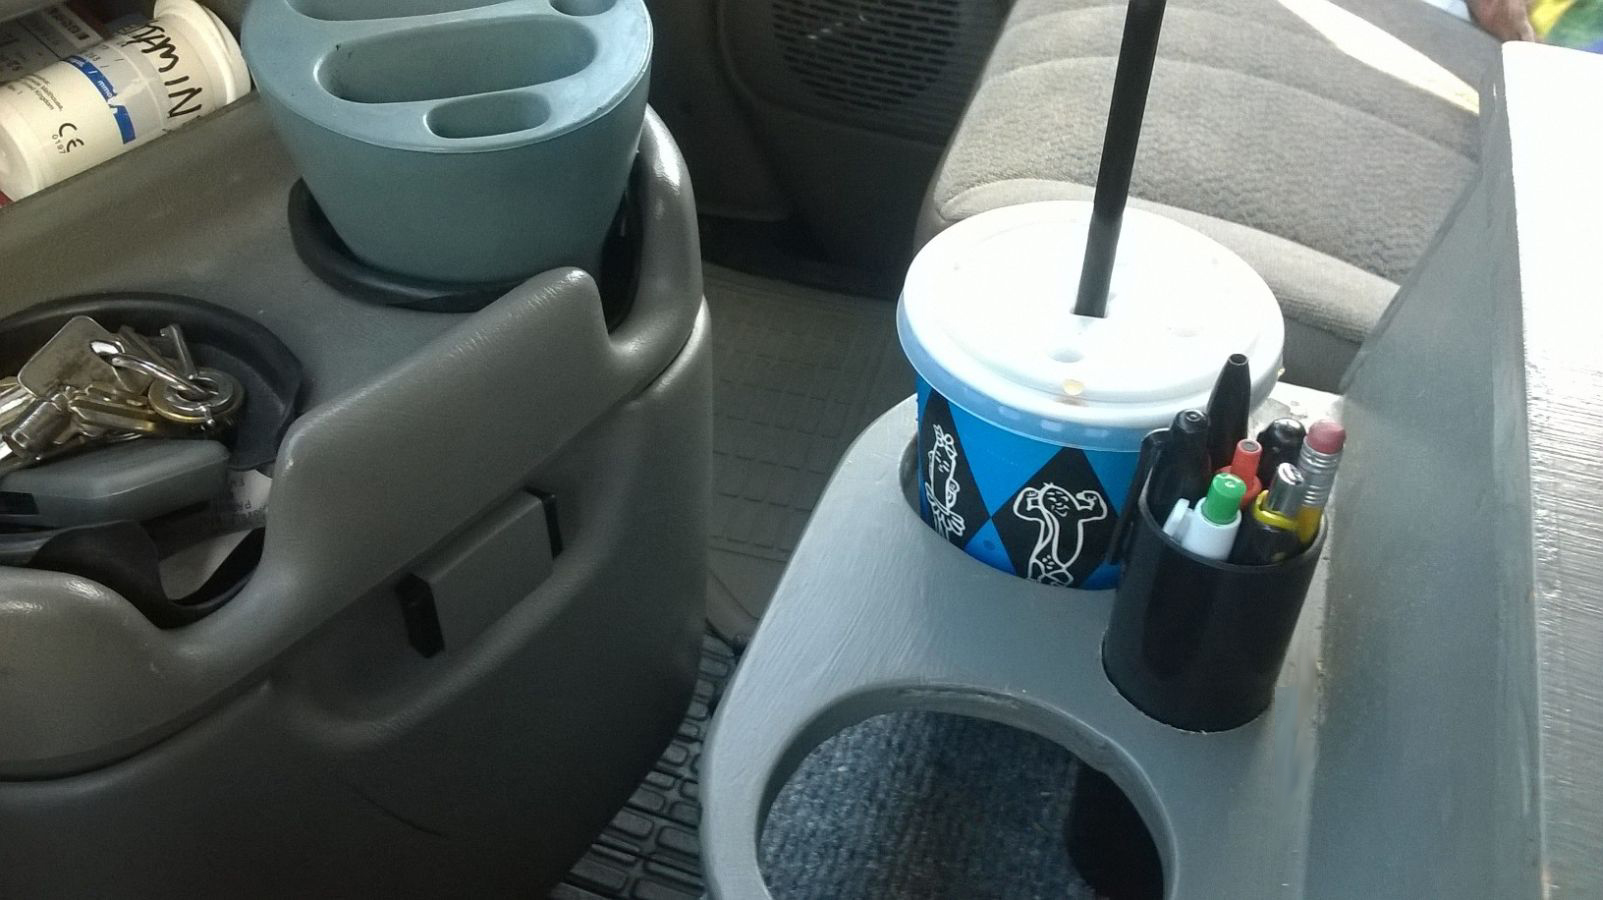 Homemade center console